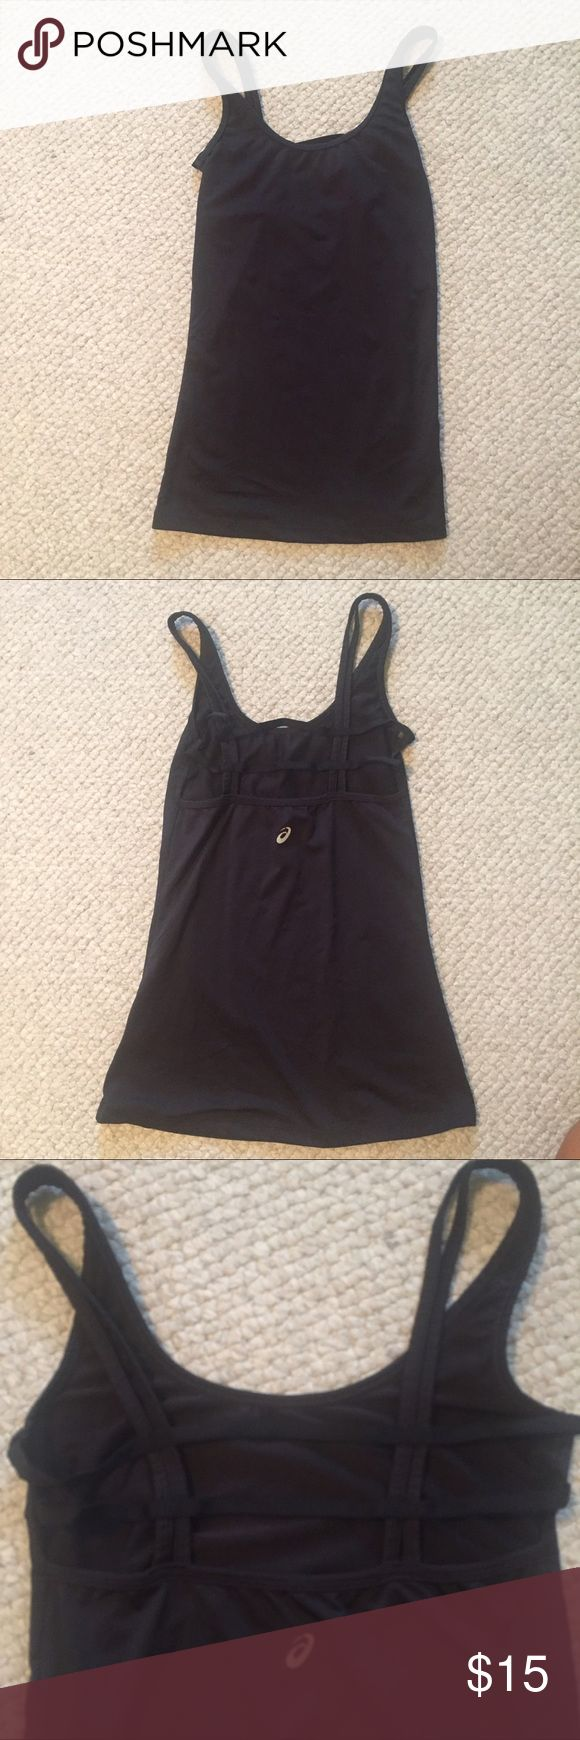 Asics Workout Tank top Only worn once workout tank top! Very good condition and perfect for anyone who likes to workout in style! Asics Tops Tank Tops